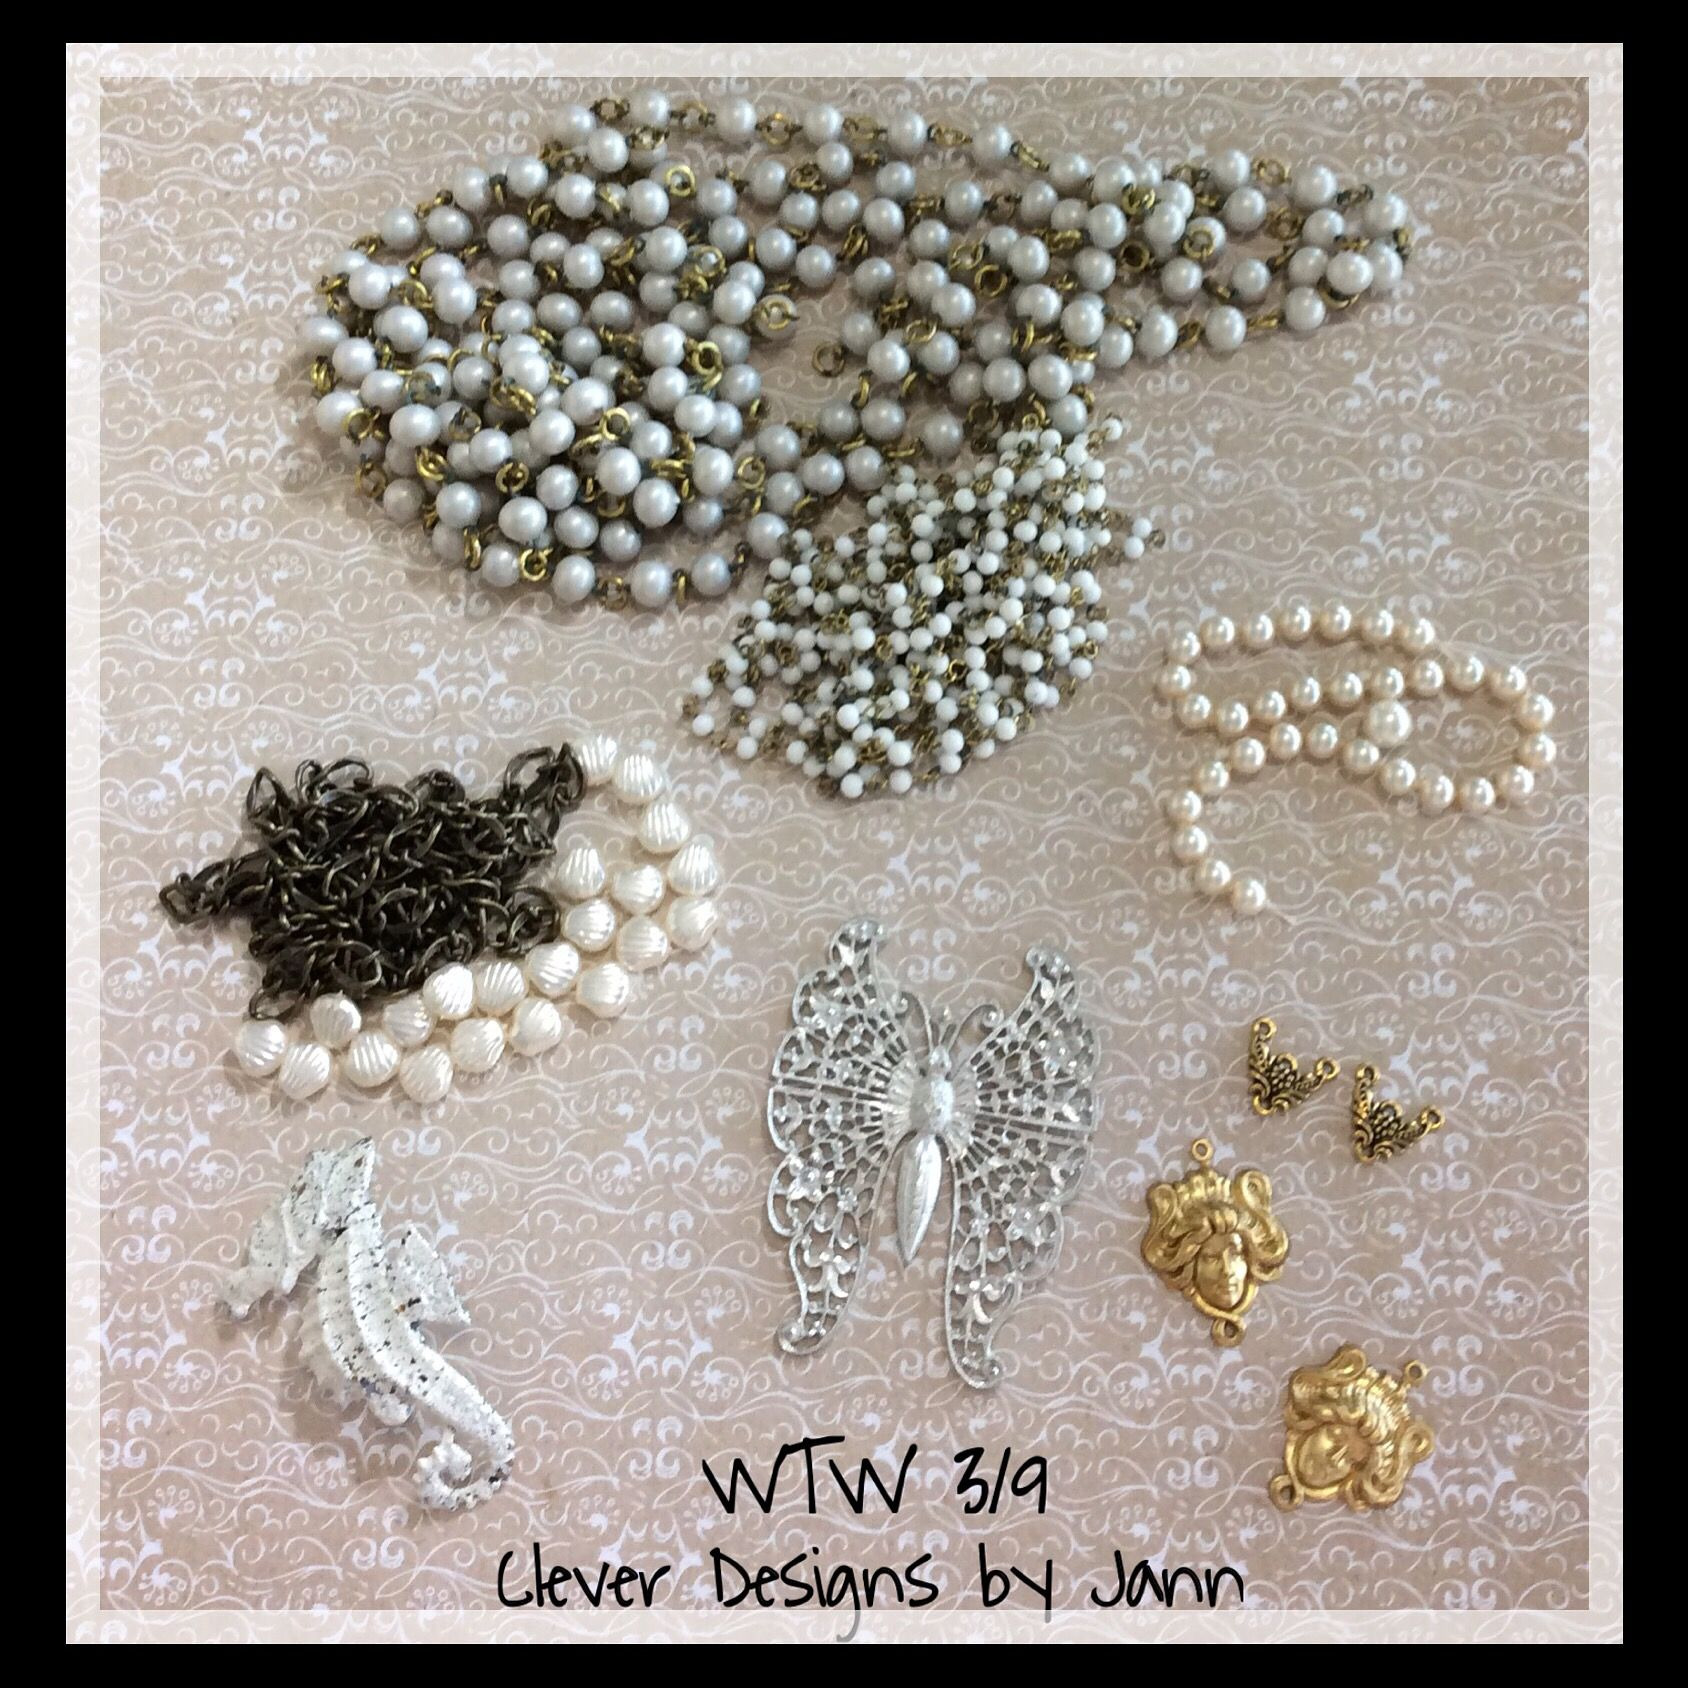 WTW 3/9 .. Clever Designs by Jann